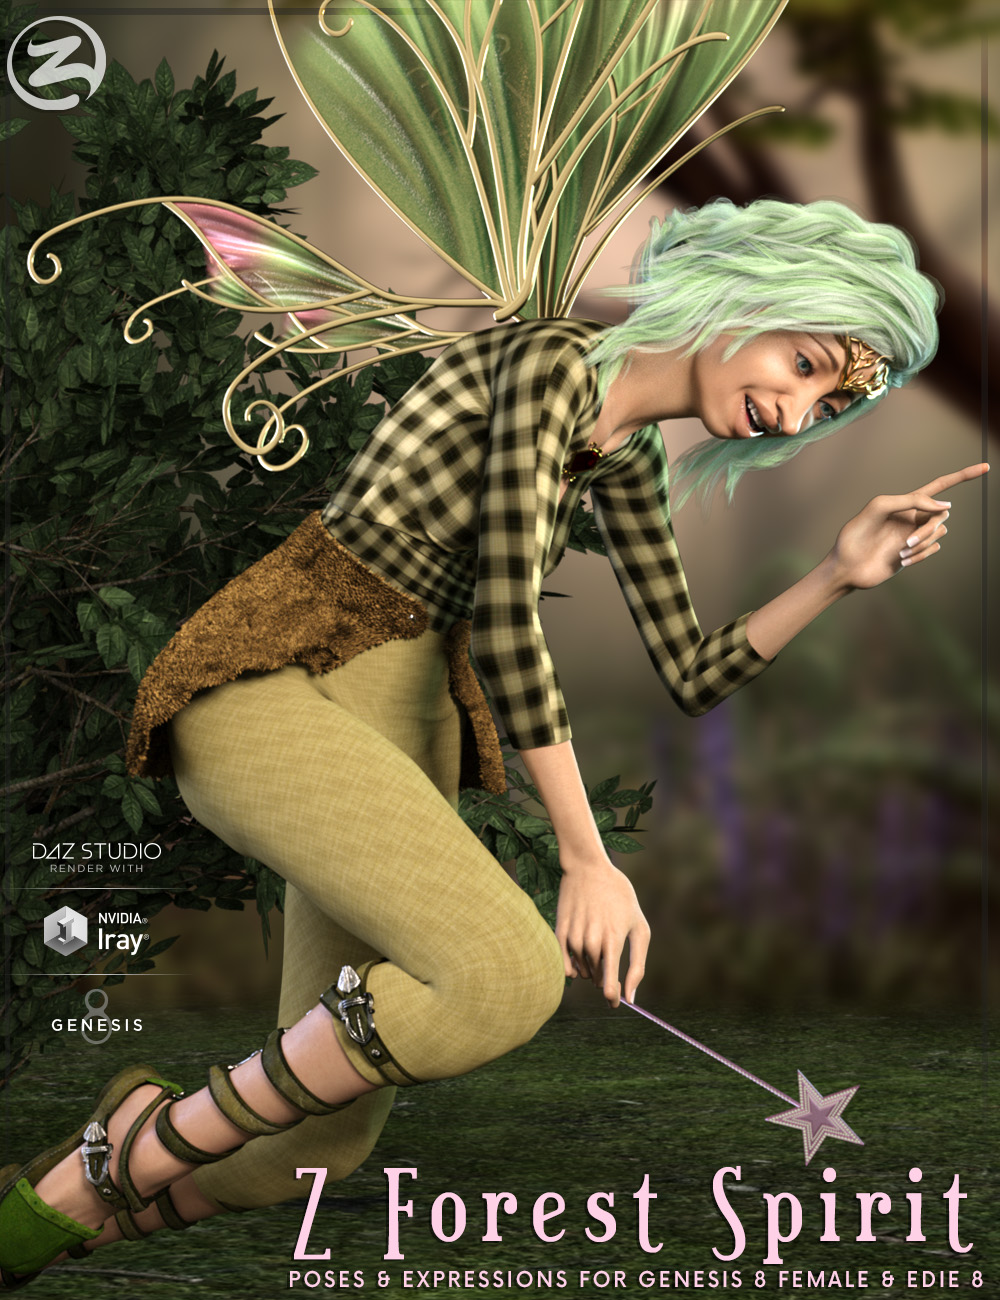 Z Forest Spirit - Poses and Expressions for Genesis 8 Female and Edie 8 by: Zeddicuss, 3D Models by Daz 3D